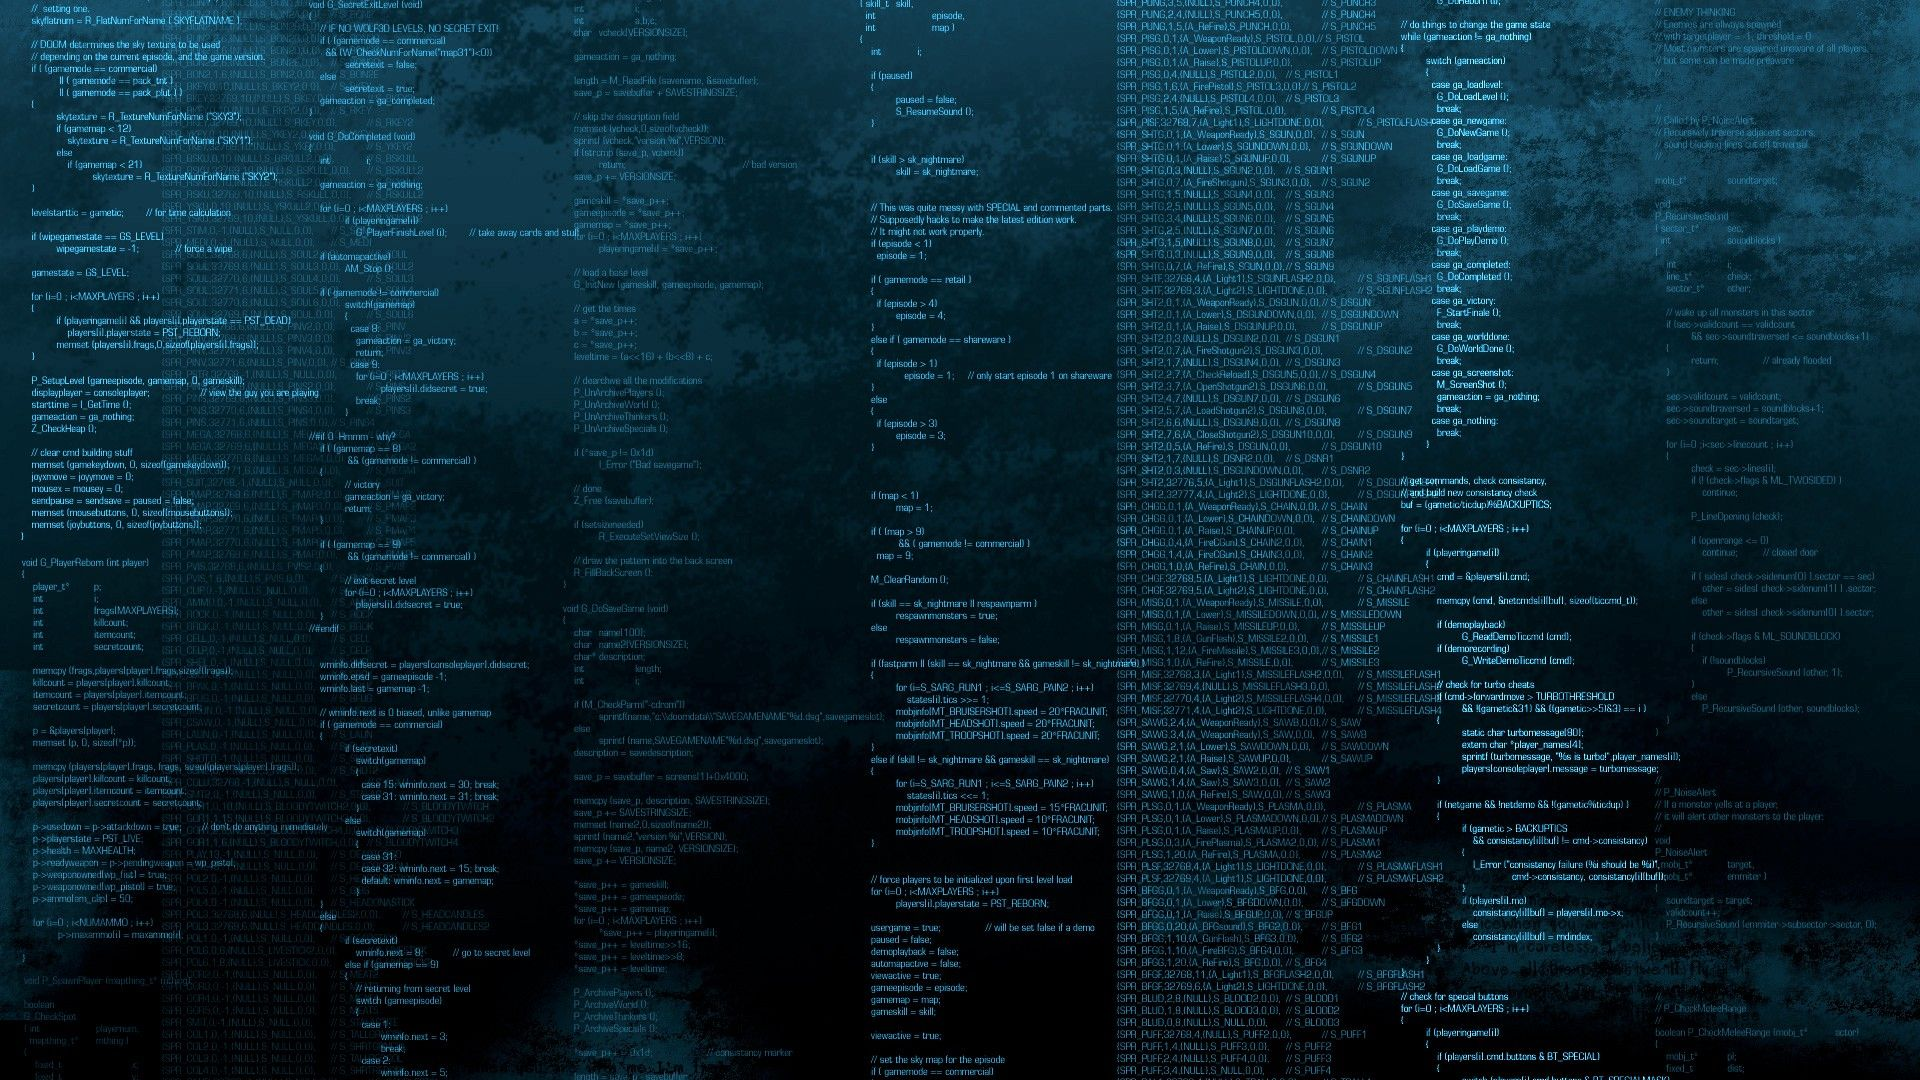 Programming Code HD Wallpaper FullHDWpp   Full HD Wallpapers 1920x1080